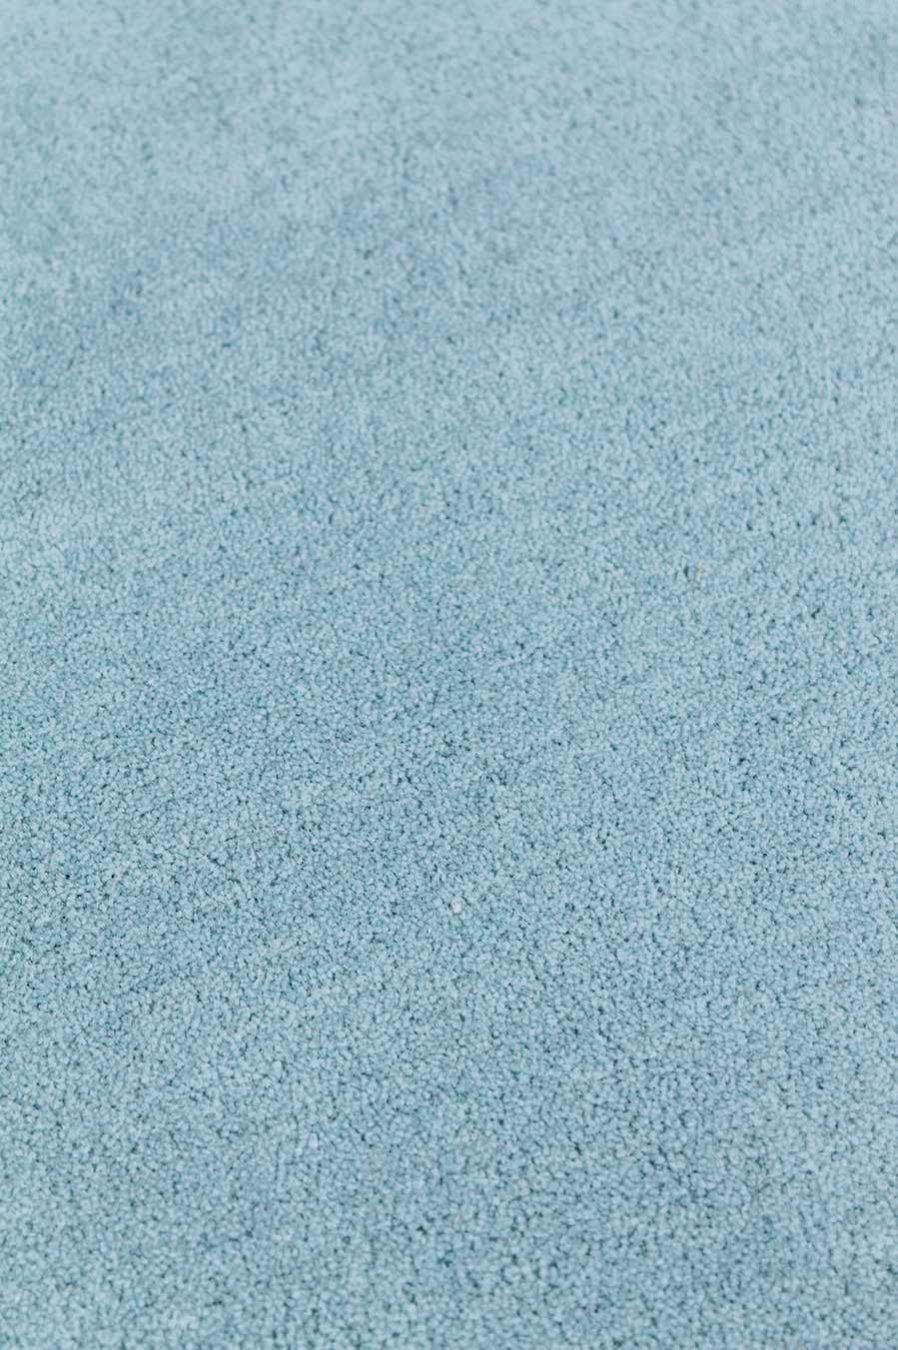 Close up view of textured Newby rug in light blue colour